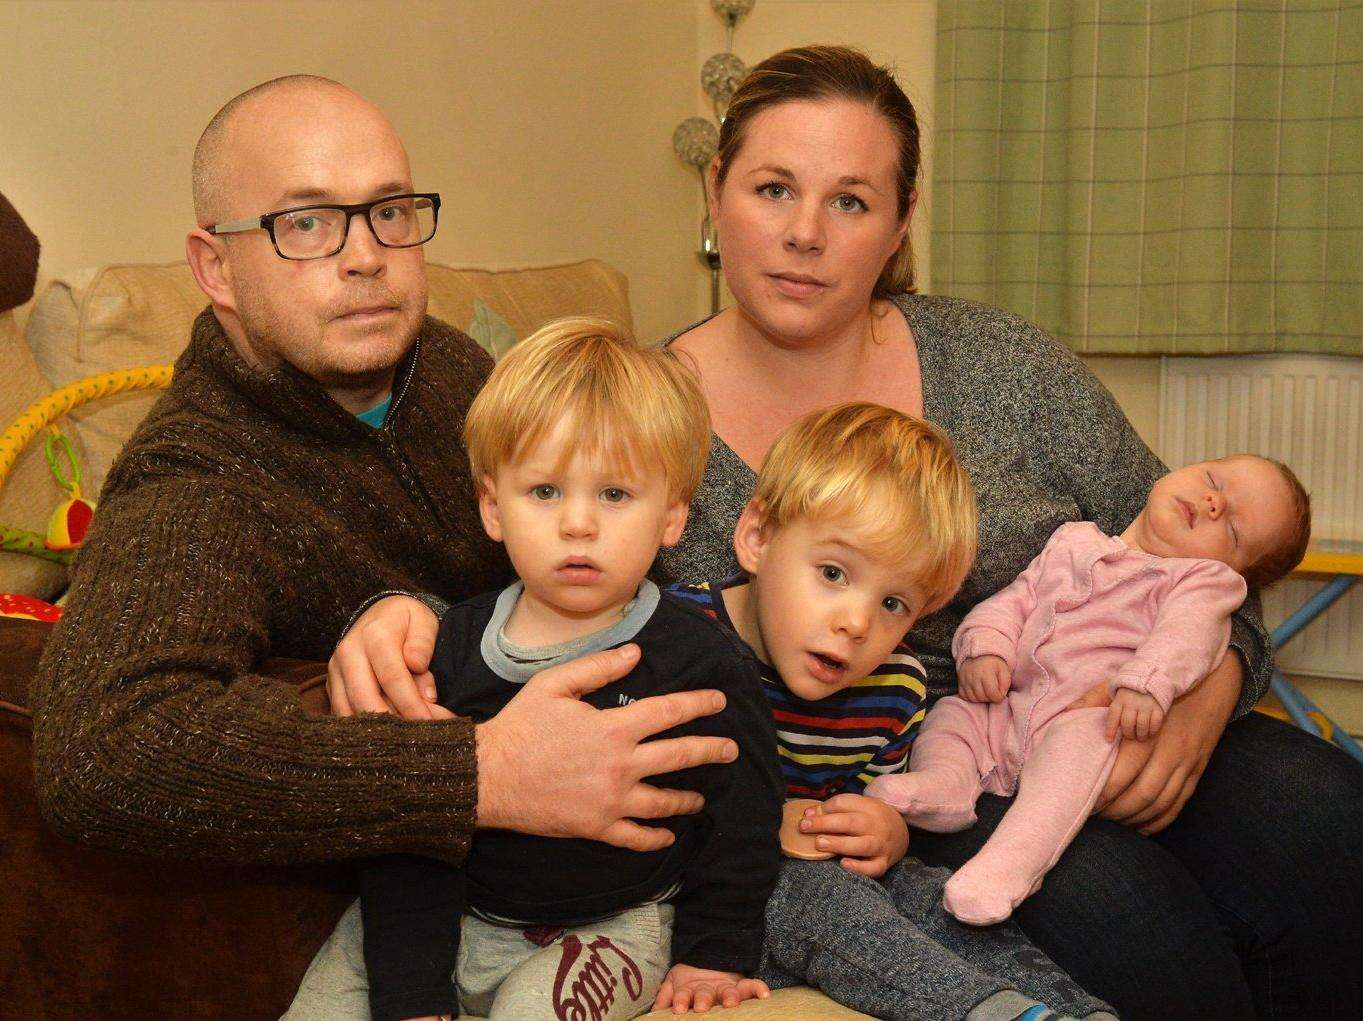 The Newmarket family who had their home broken into by thieves.